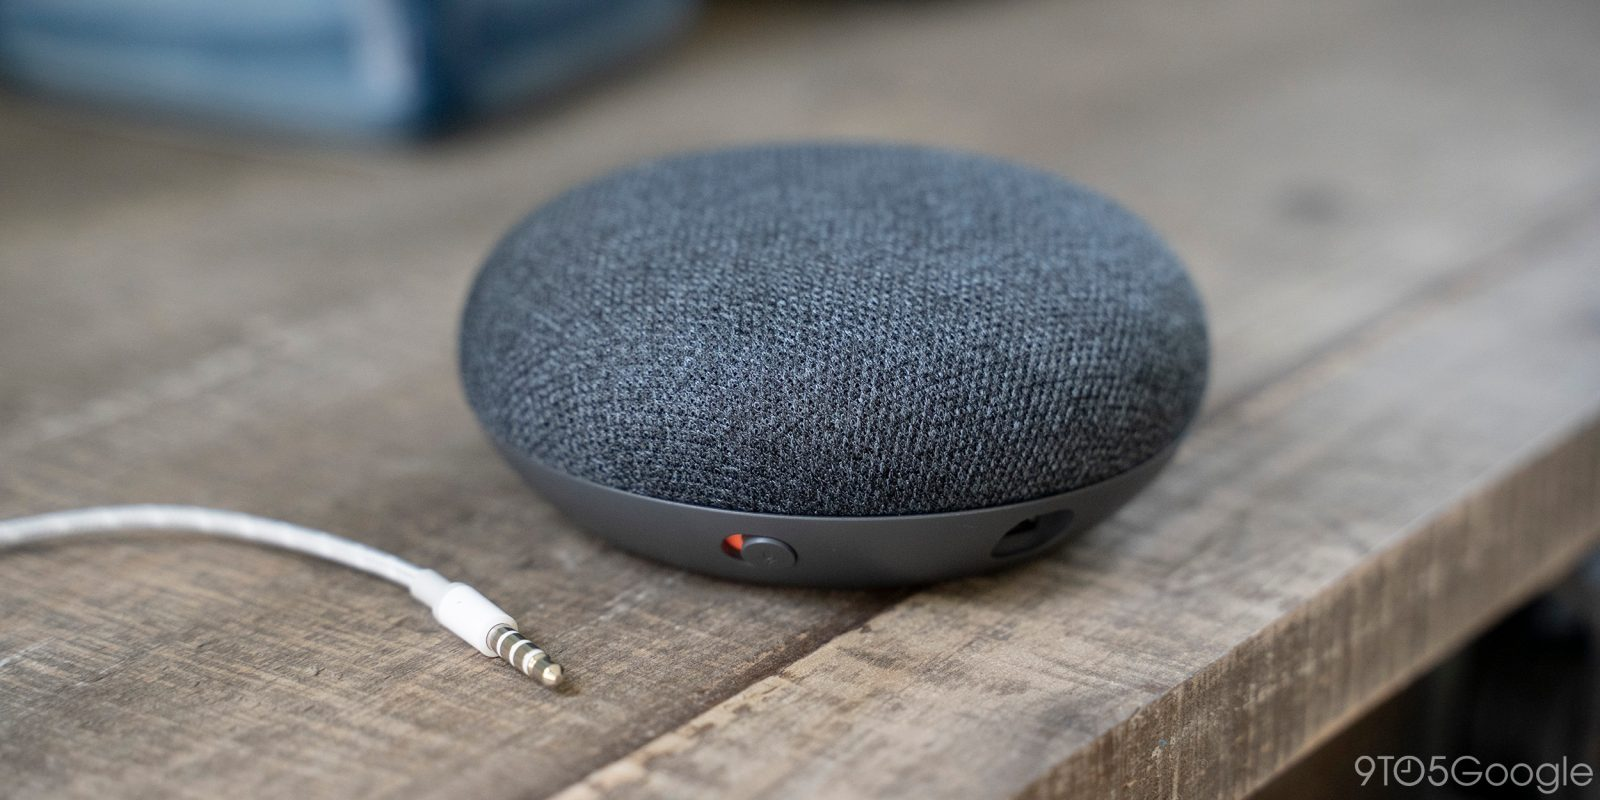 Exclusive: Google plans second-gen 'Nest Mini' w/ built-in wall mount, better sound, aux jack